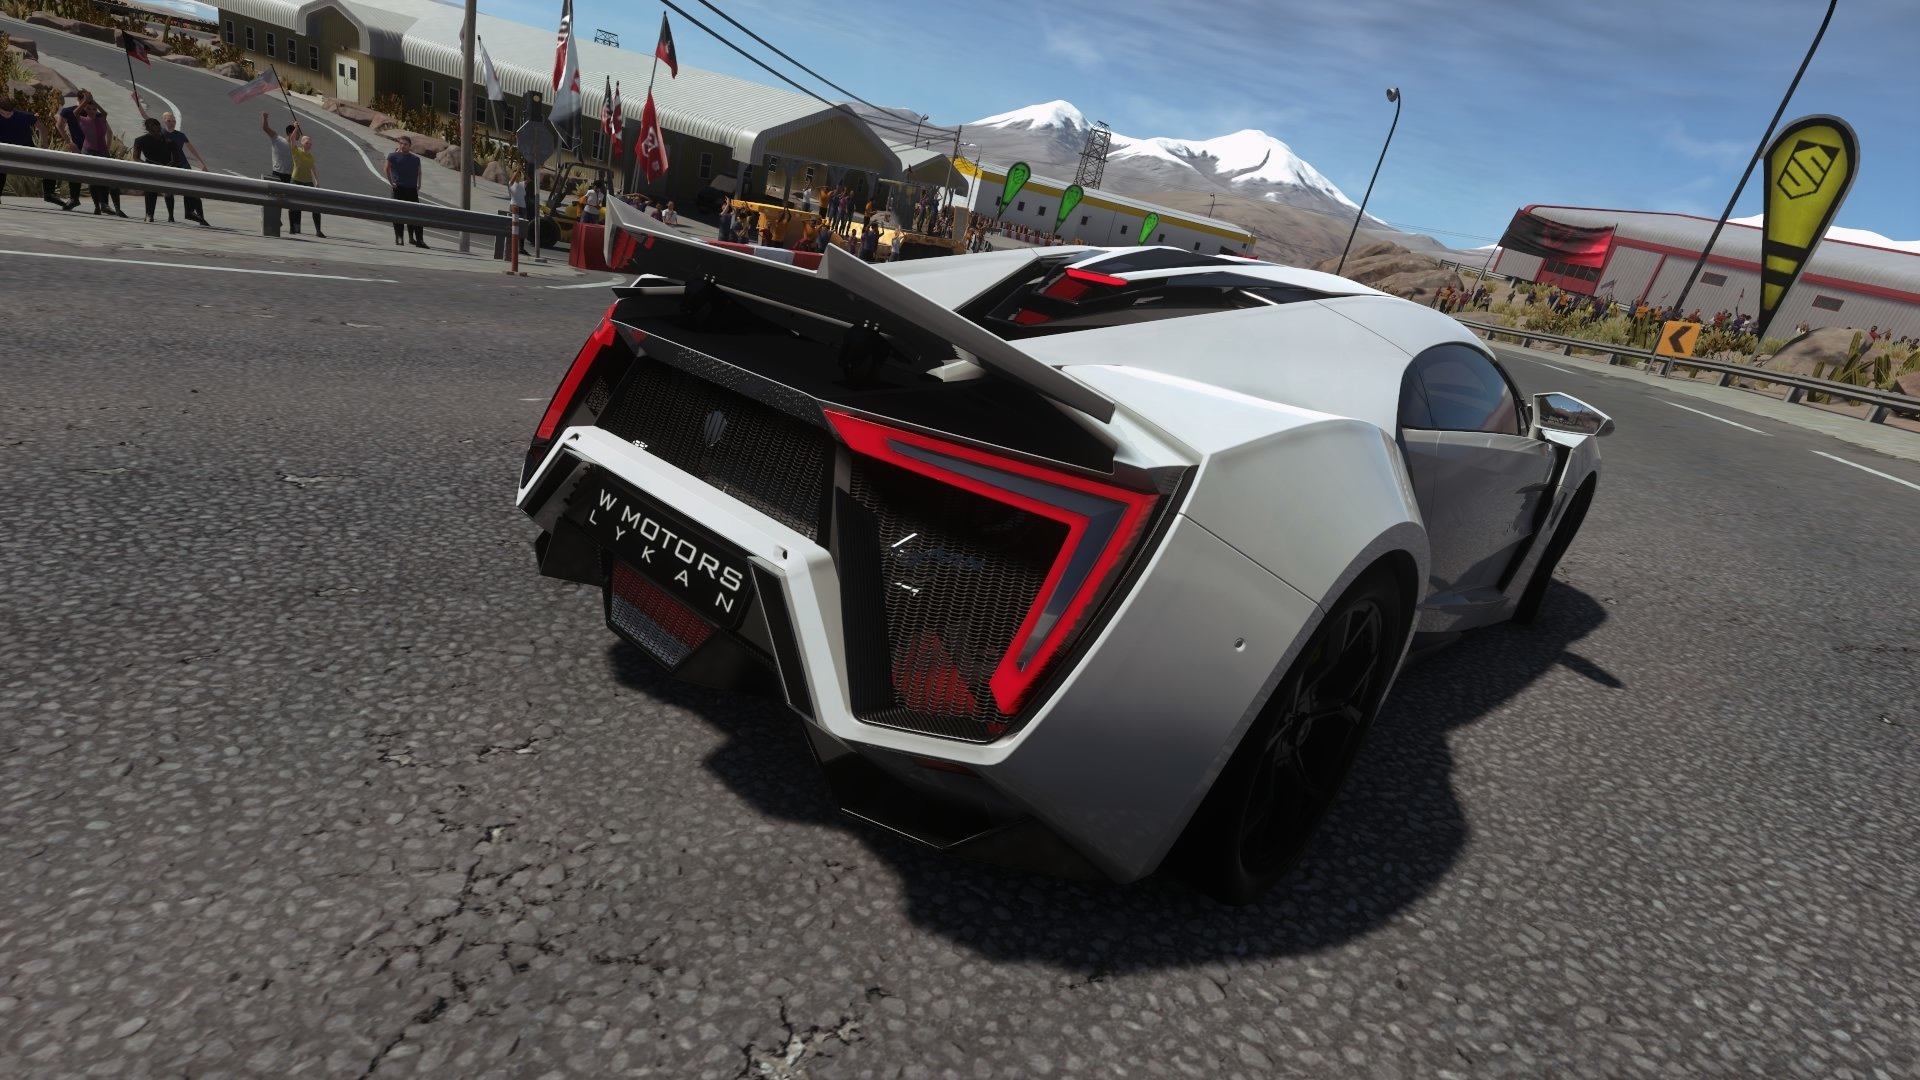 Lykan hypersport hd wallpaper background image - Lykan hypersport wallpaper 1920x1080 ...